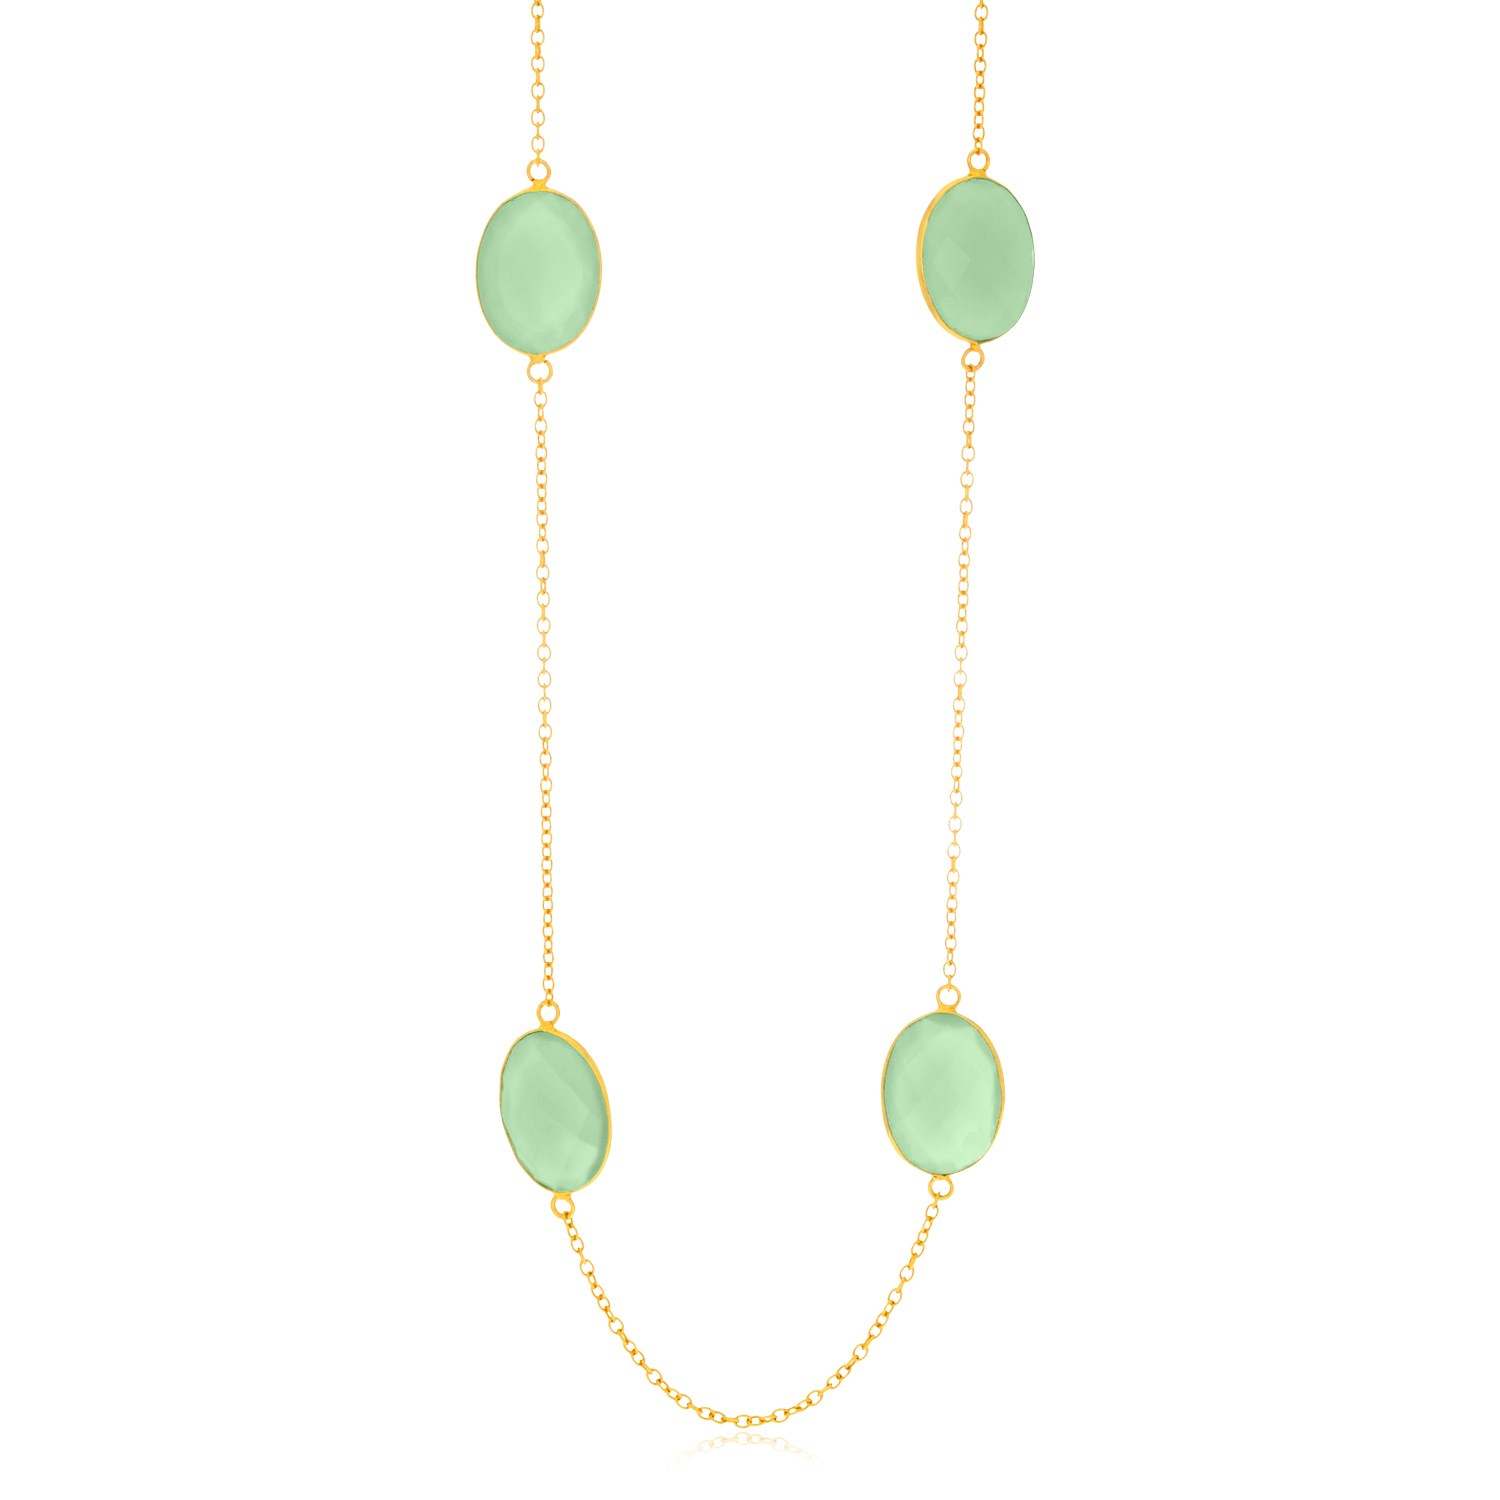 "Sterling Silver Yellow Gold Plated Oval Aqua Chalcedony Station Chain Necklace 38"" by Mia Diamonds"